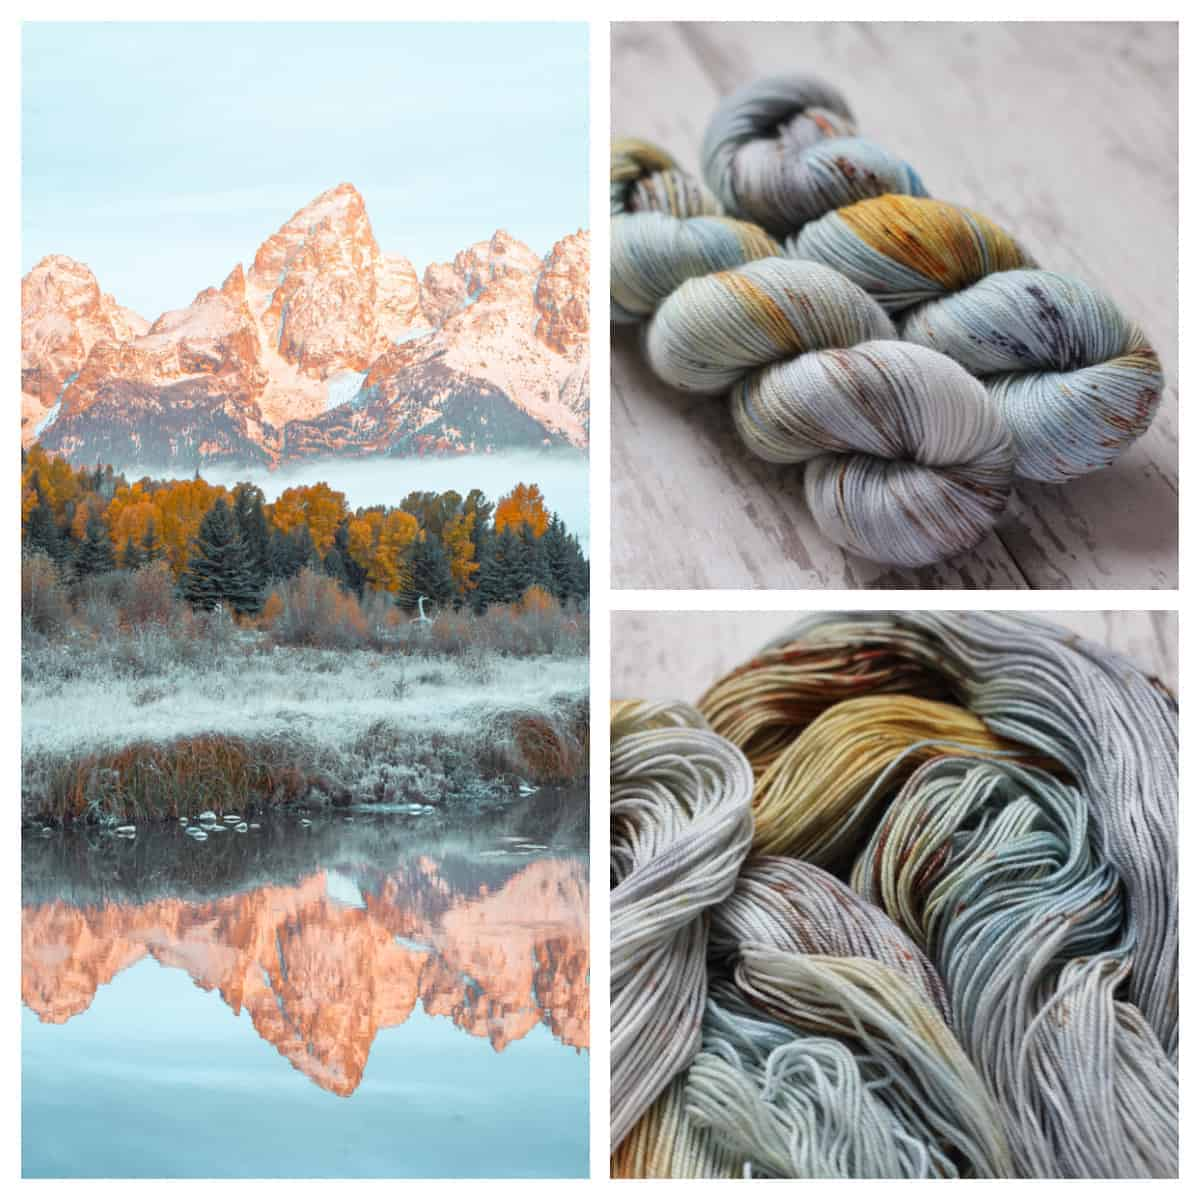 A golden mountain reflected in a lake, and light blue yarn speckled with gold and purple.